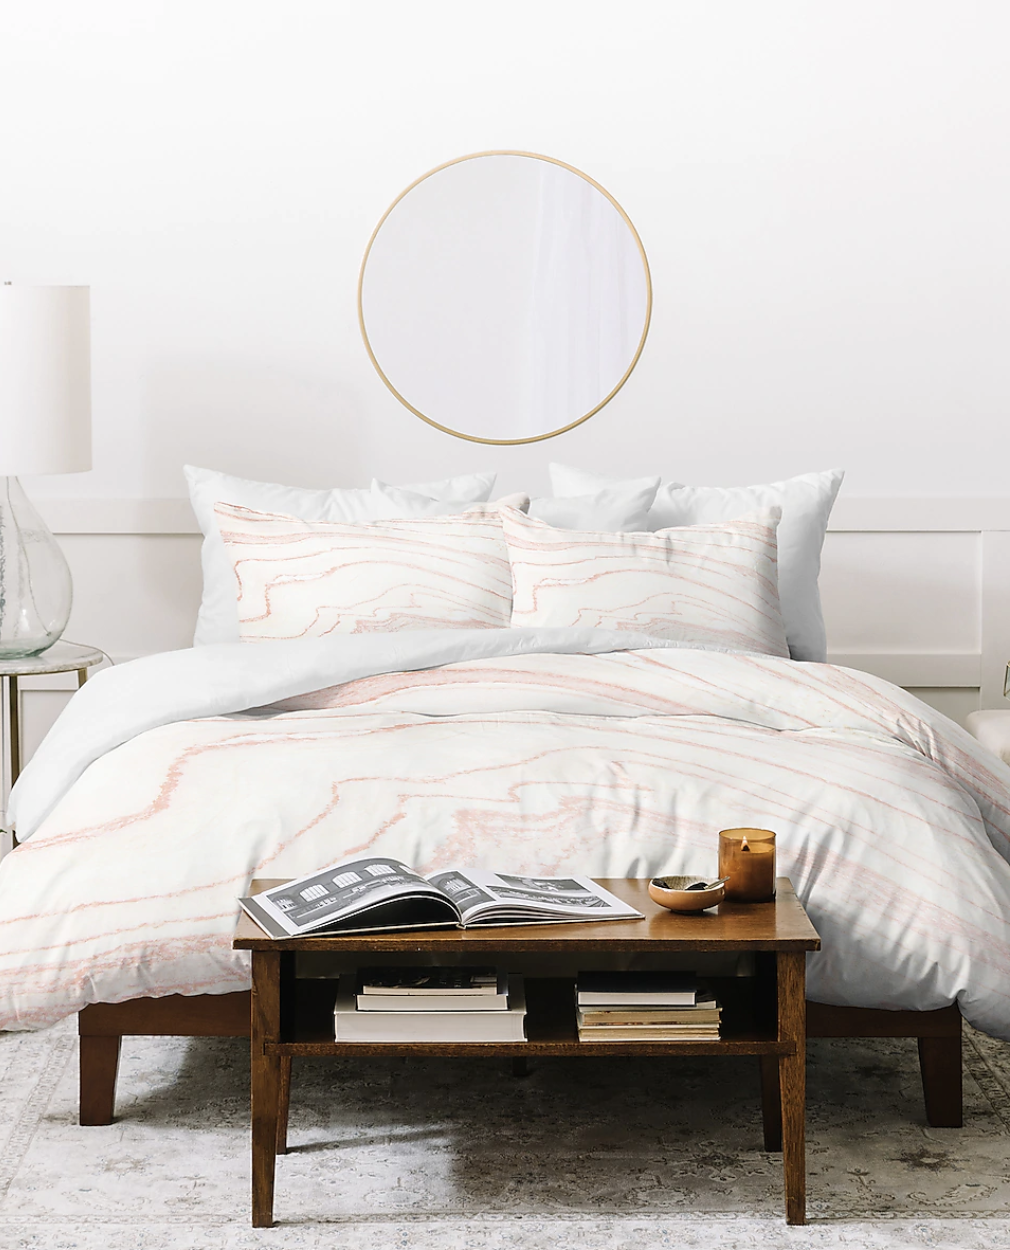 A pale pink and white marble patterned duvet set on a bed